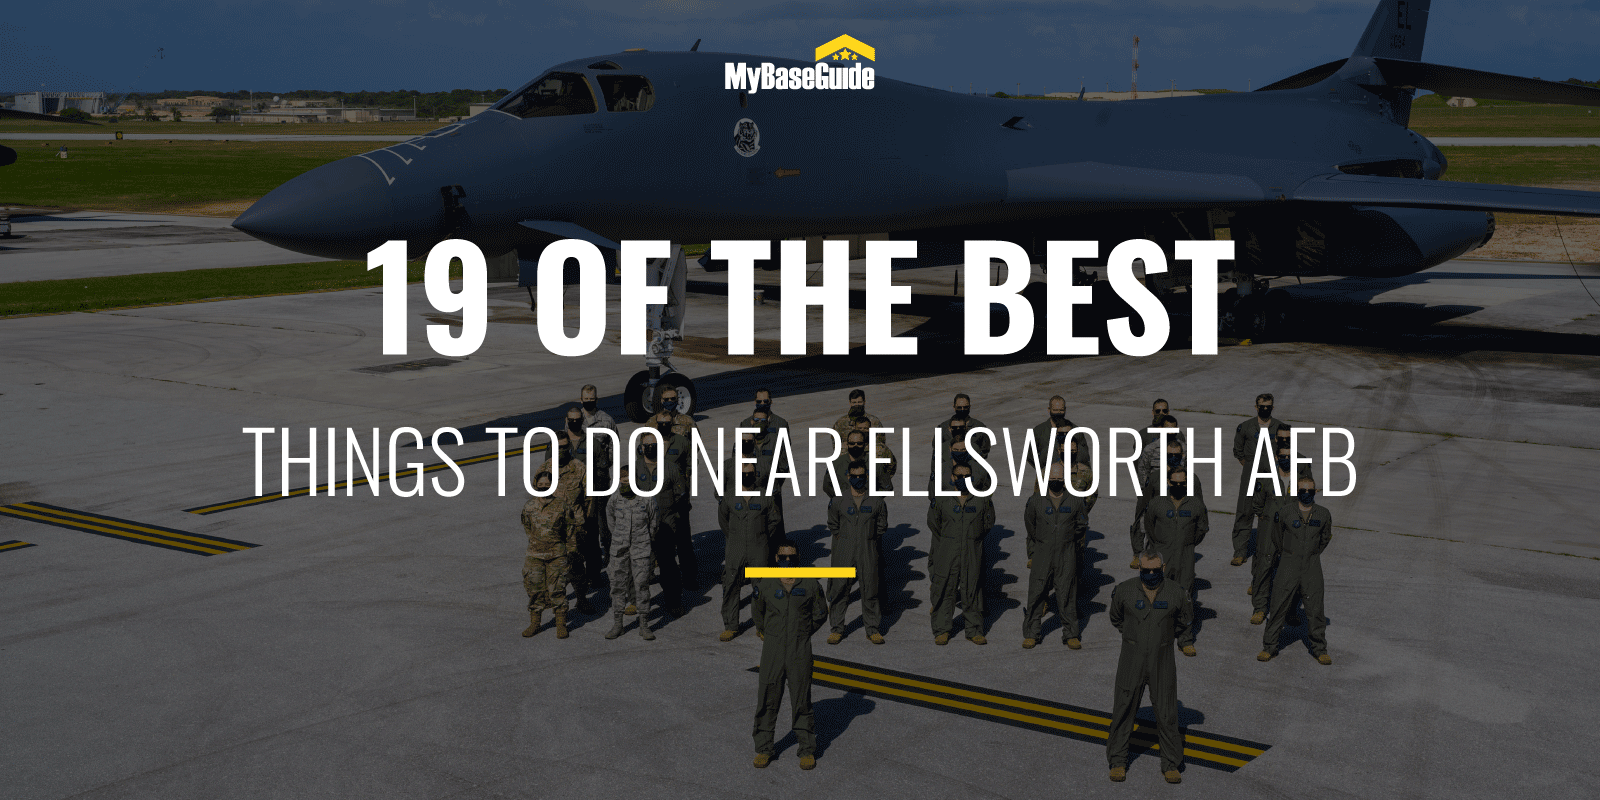 19 Of the Best Ellsworth AFB Things to Do